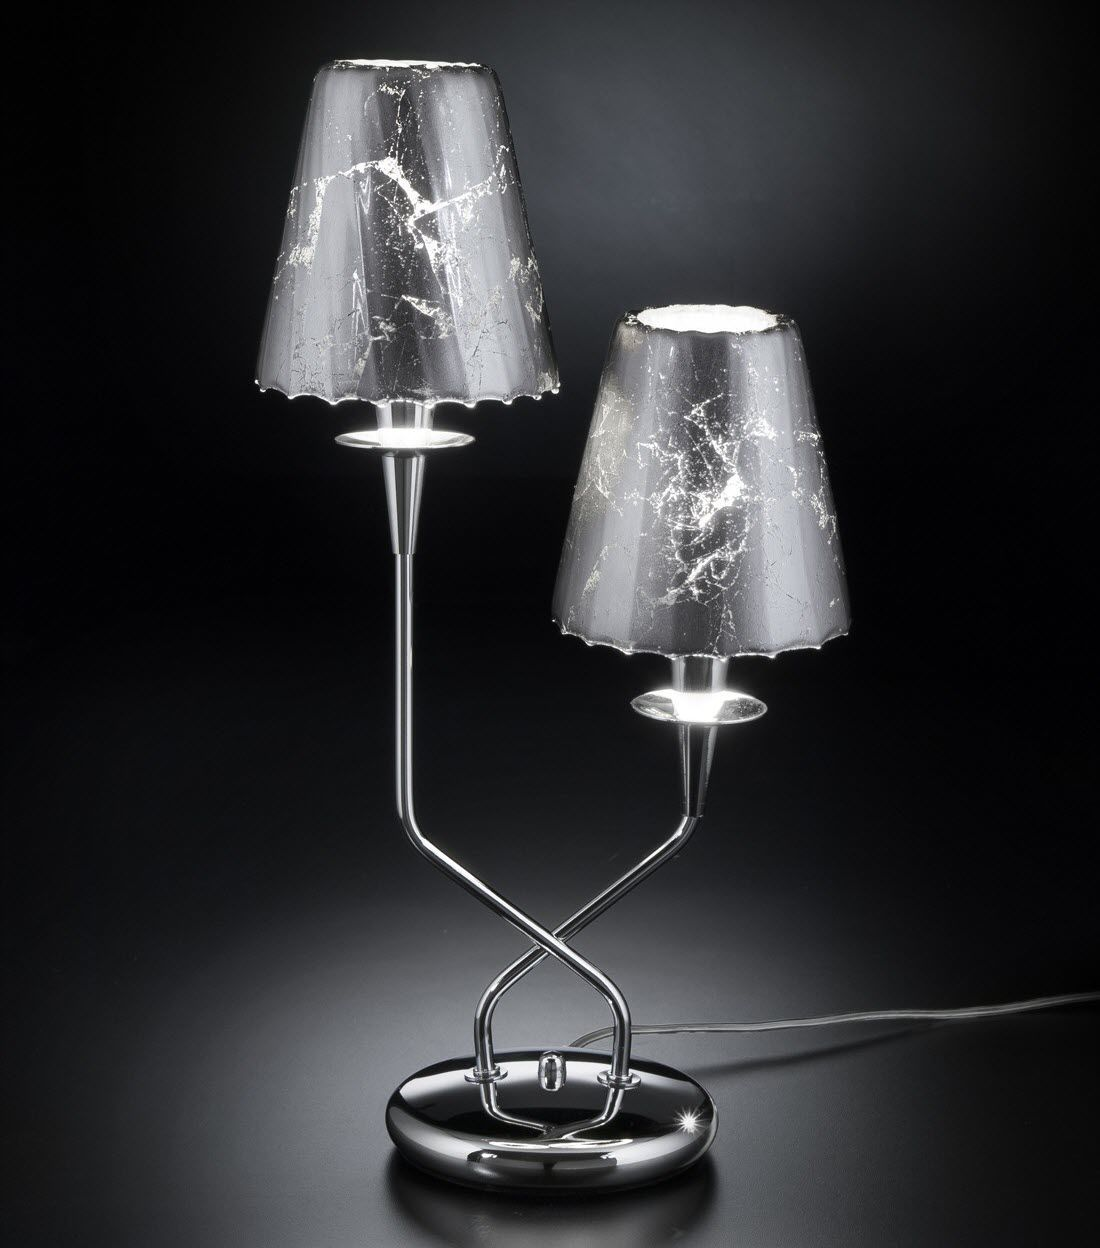 Lampe de table OPERA METAL LUX contemporaine en